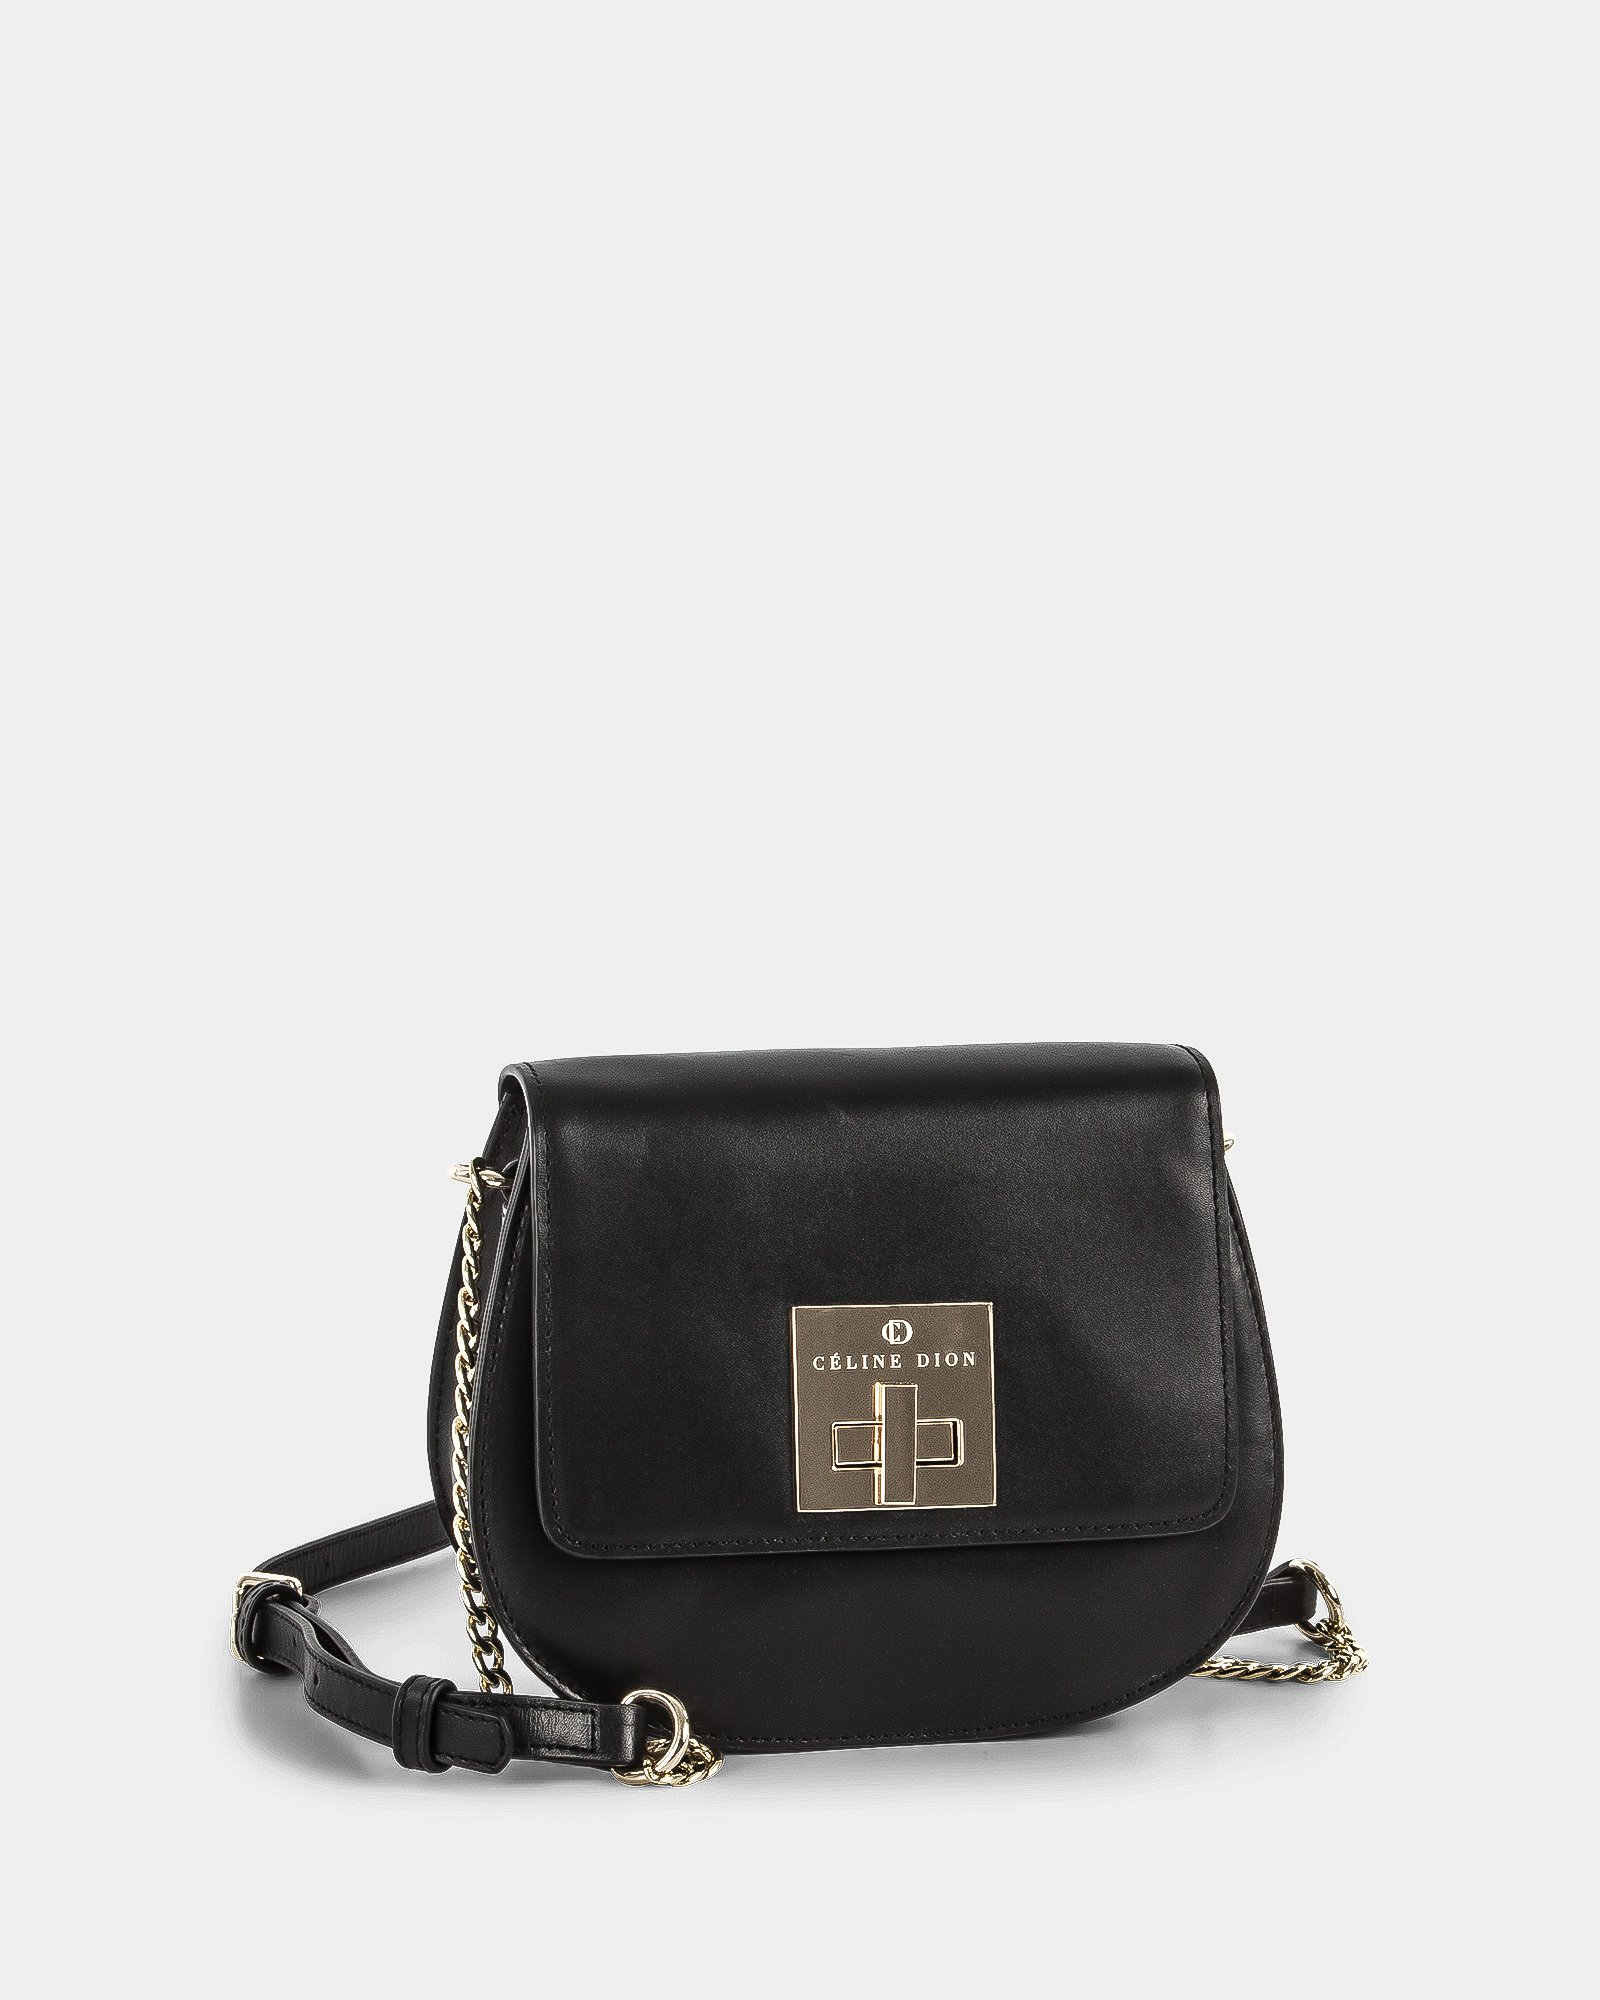 MINUET - Flap bag - Céline Dion - Zoom